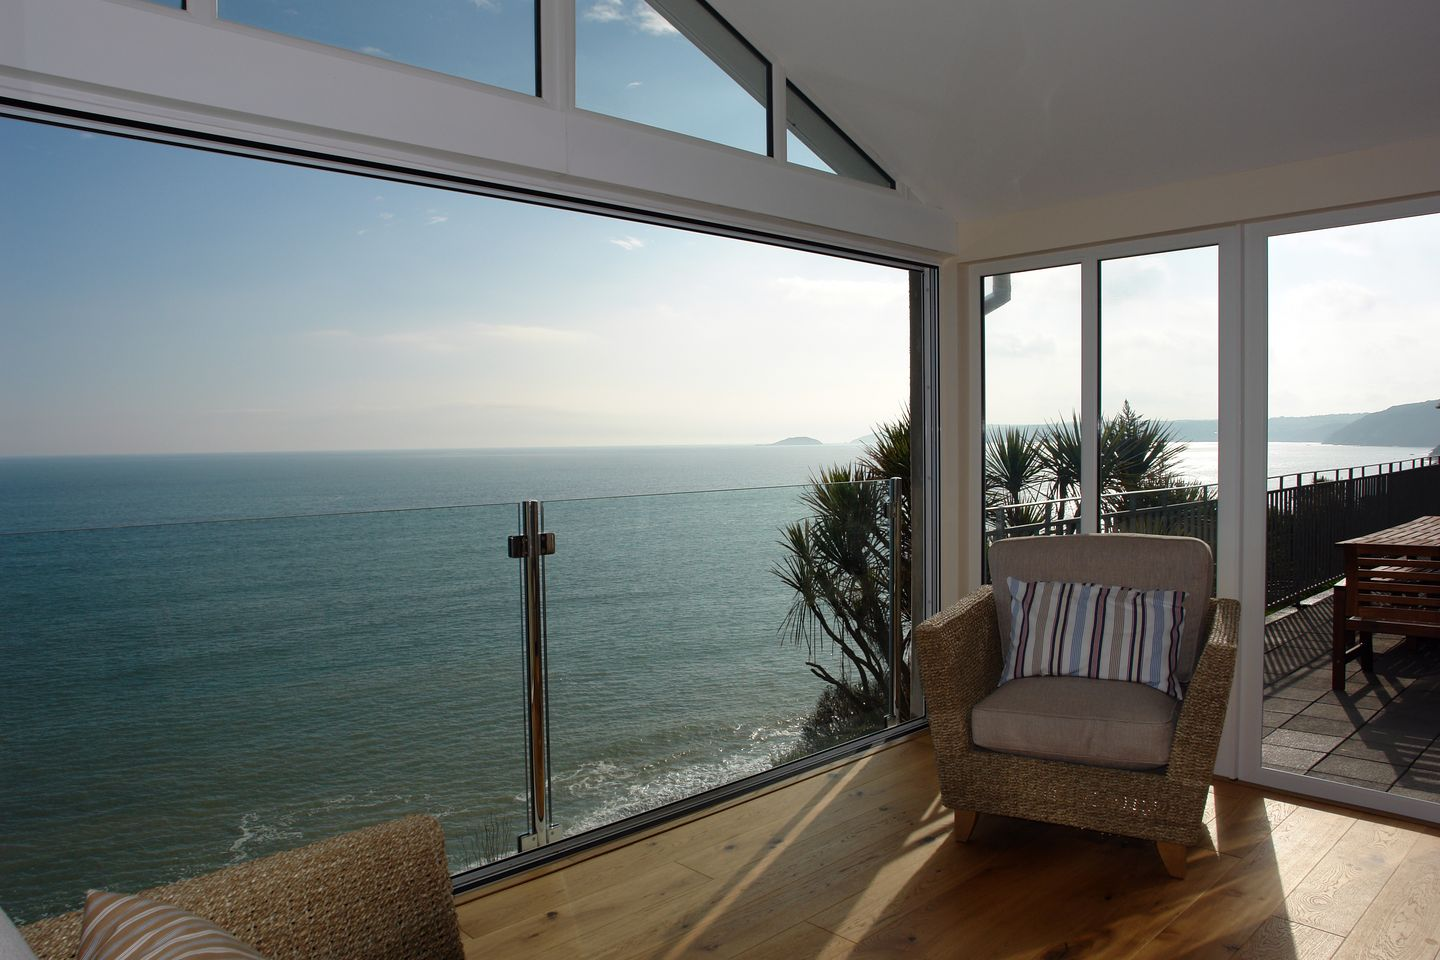 Beach Belle Downderry Chair With Sea View